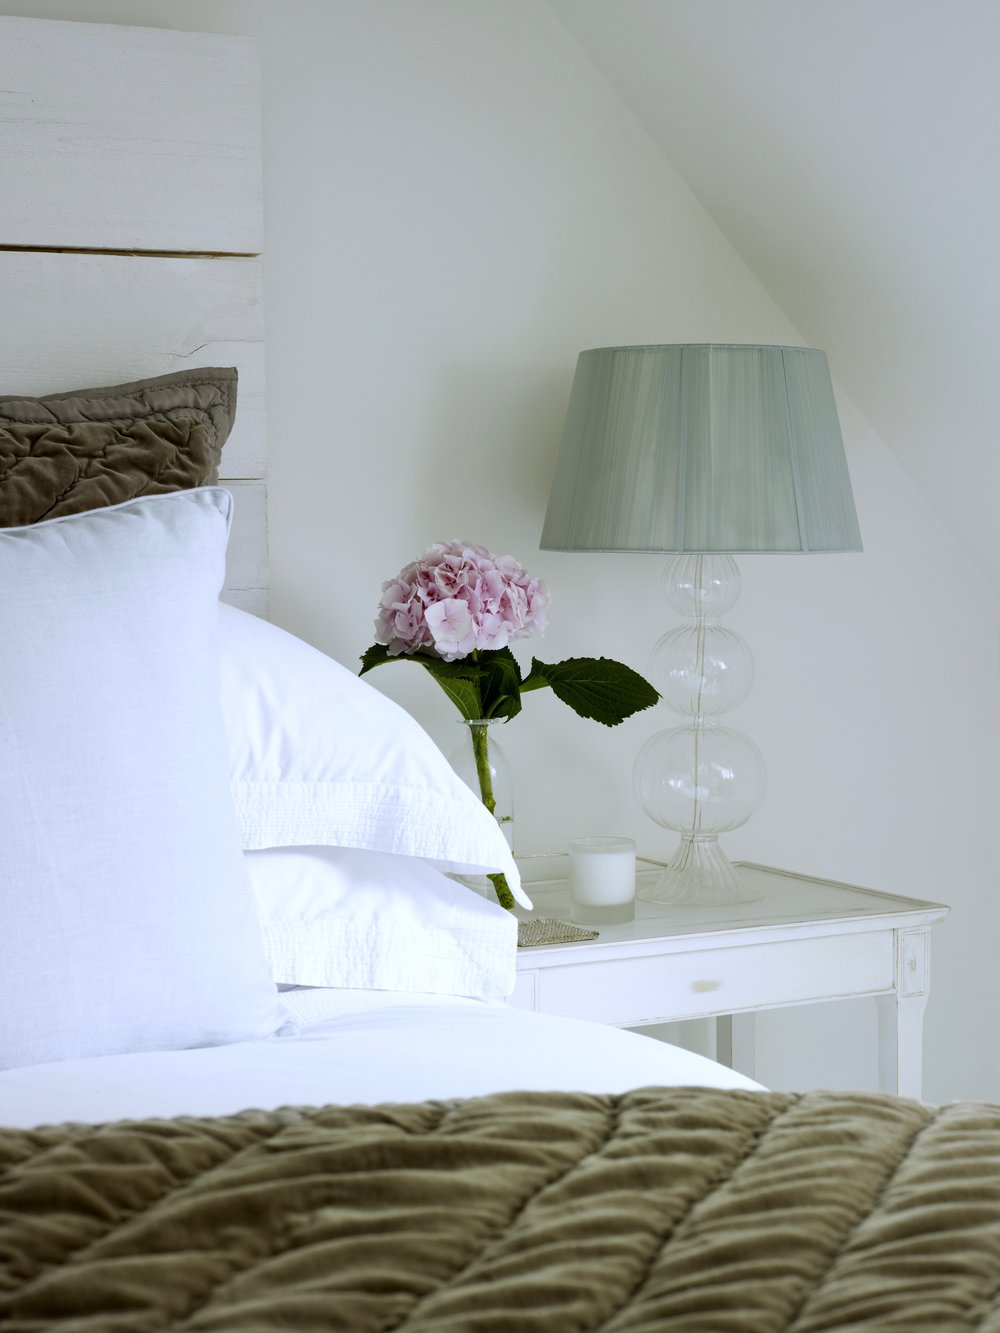 LOUISE HOLT, INTERIOR DESIGN, OXFORD, OXFORDSHIRE, CONTEMPORARY COUNTRY, BEDROOM, COTSWOLDS